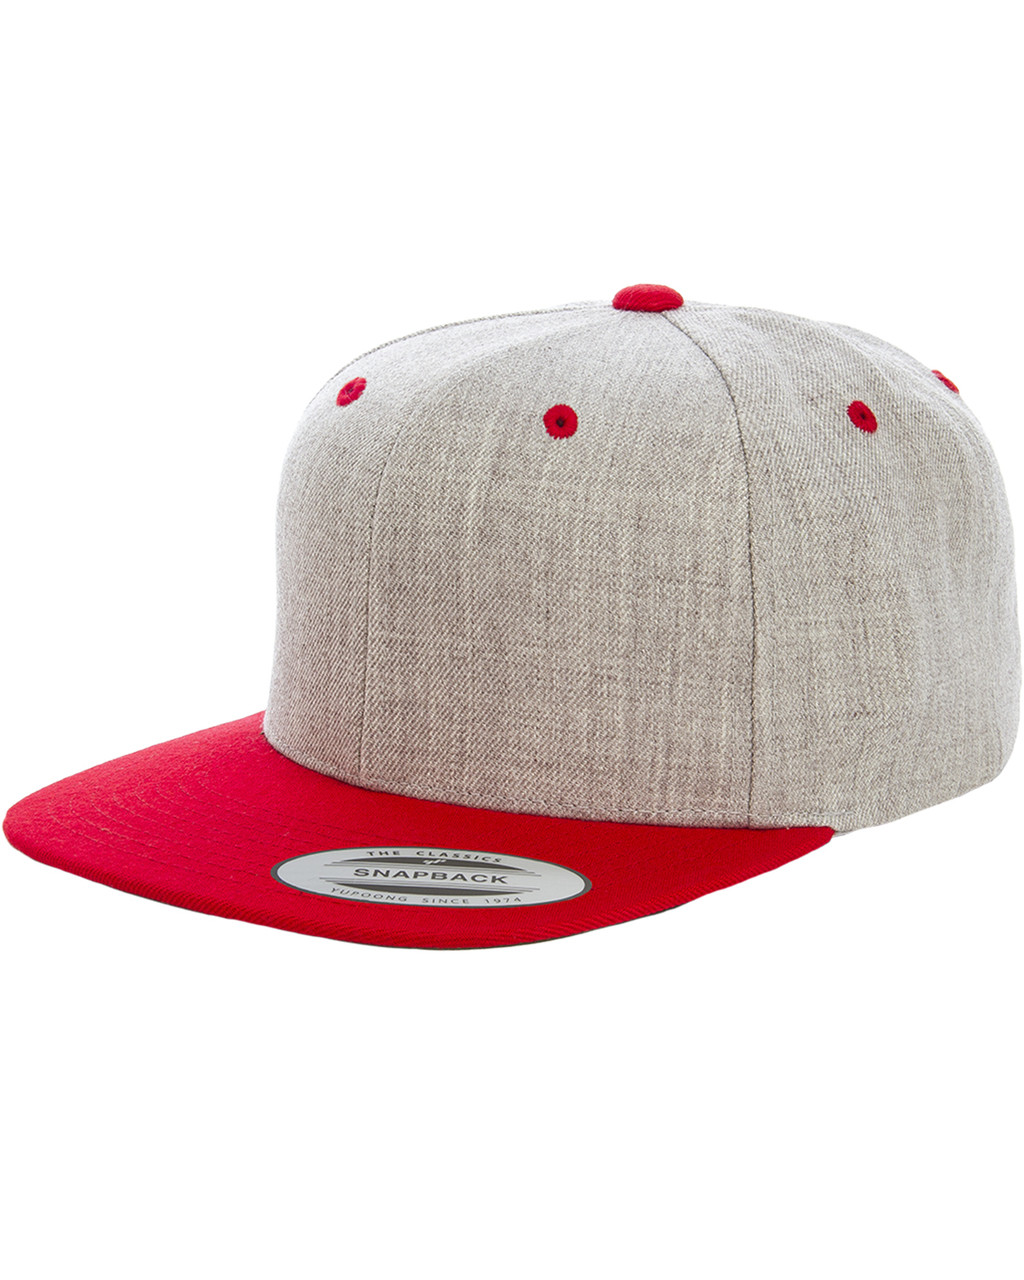 c0db33ff7cacc6 Yupoong 6089MT Adult 6-Panel Structured Flat Visor Classic Two-Tone  Snapback - ClothingAuthority.com